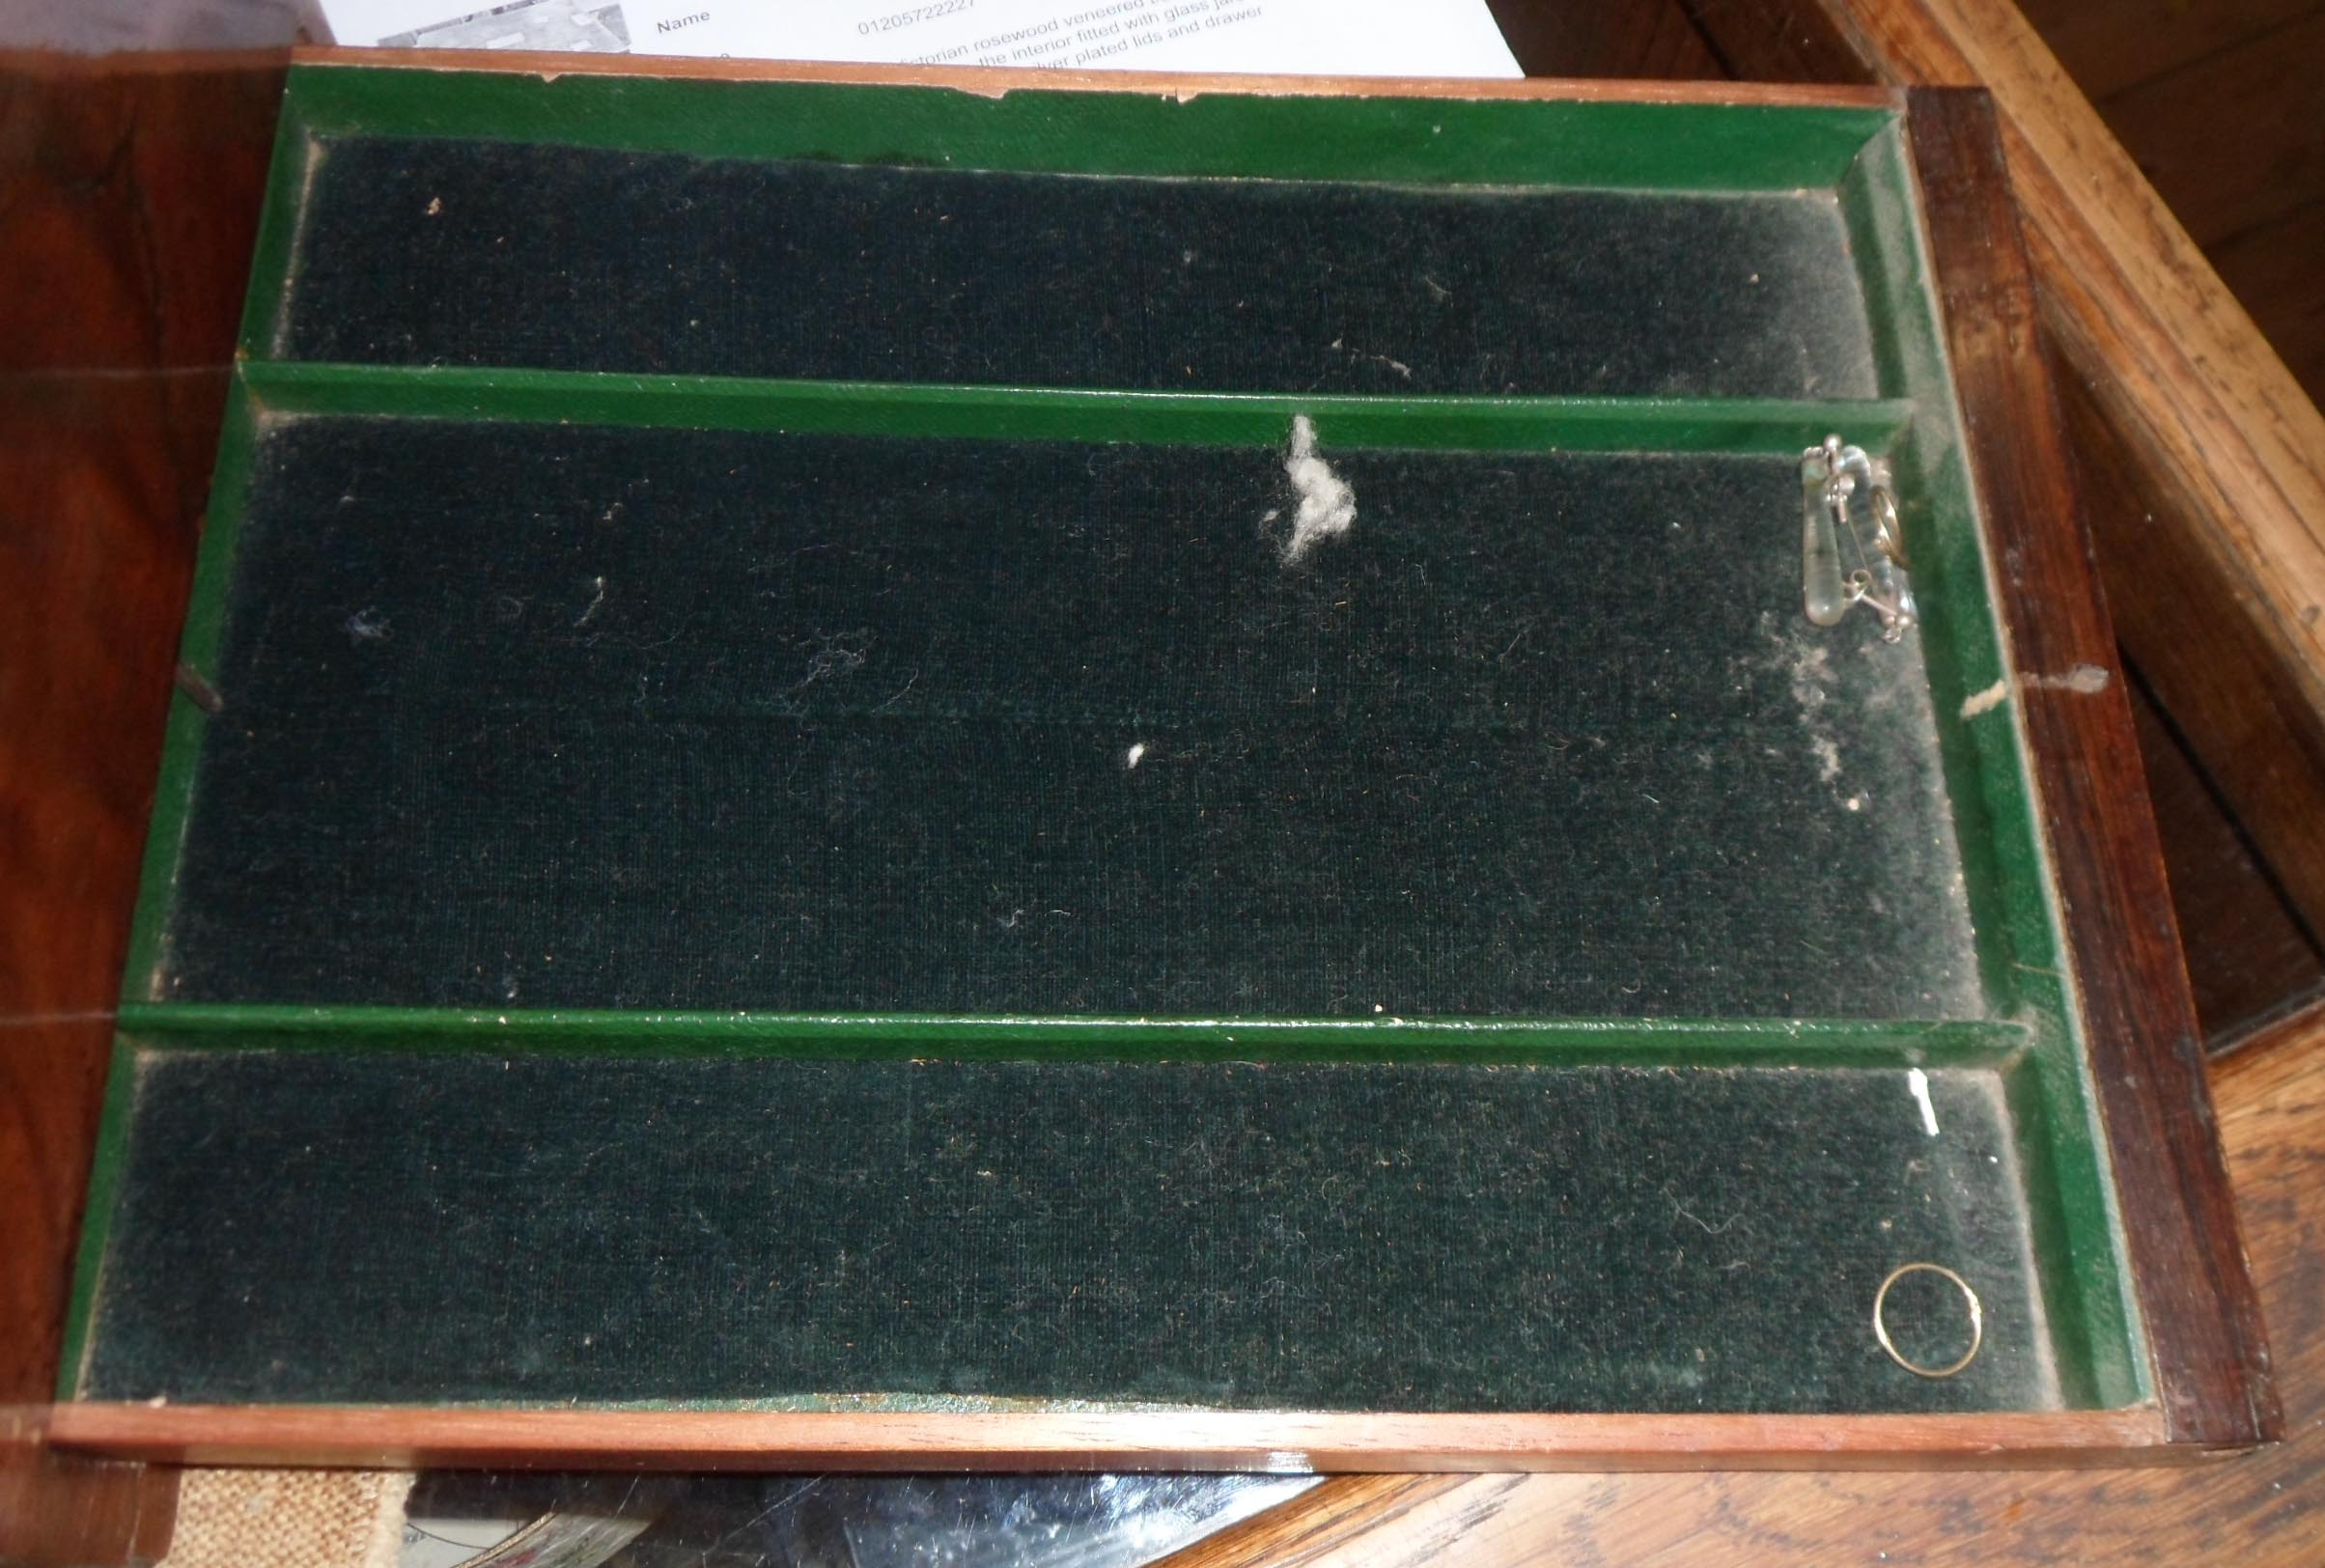 A Victorian rosewood veneered travelling vanity box, the interior fitted with glass jars and boxes - Image 5 of 5